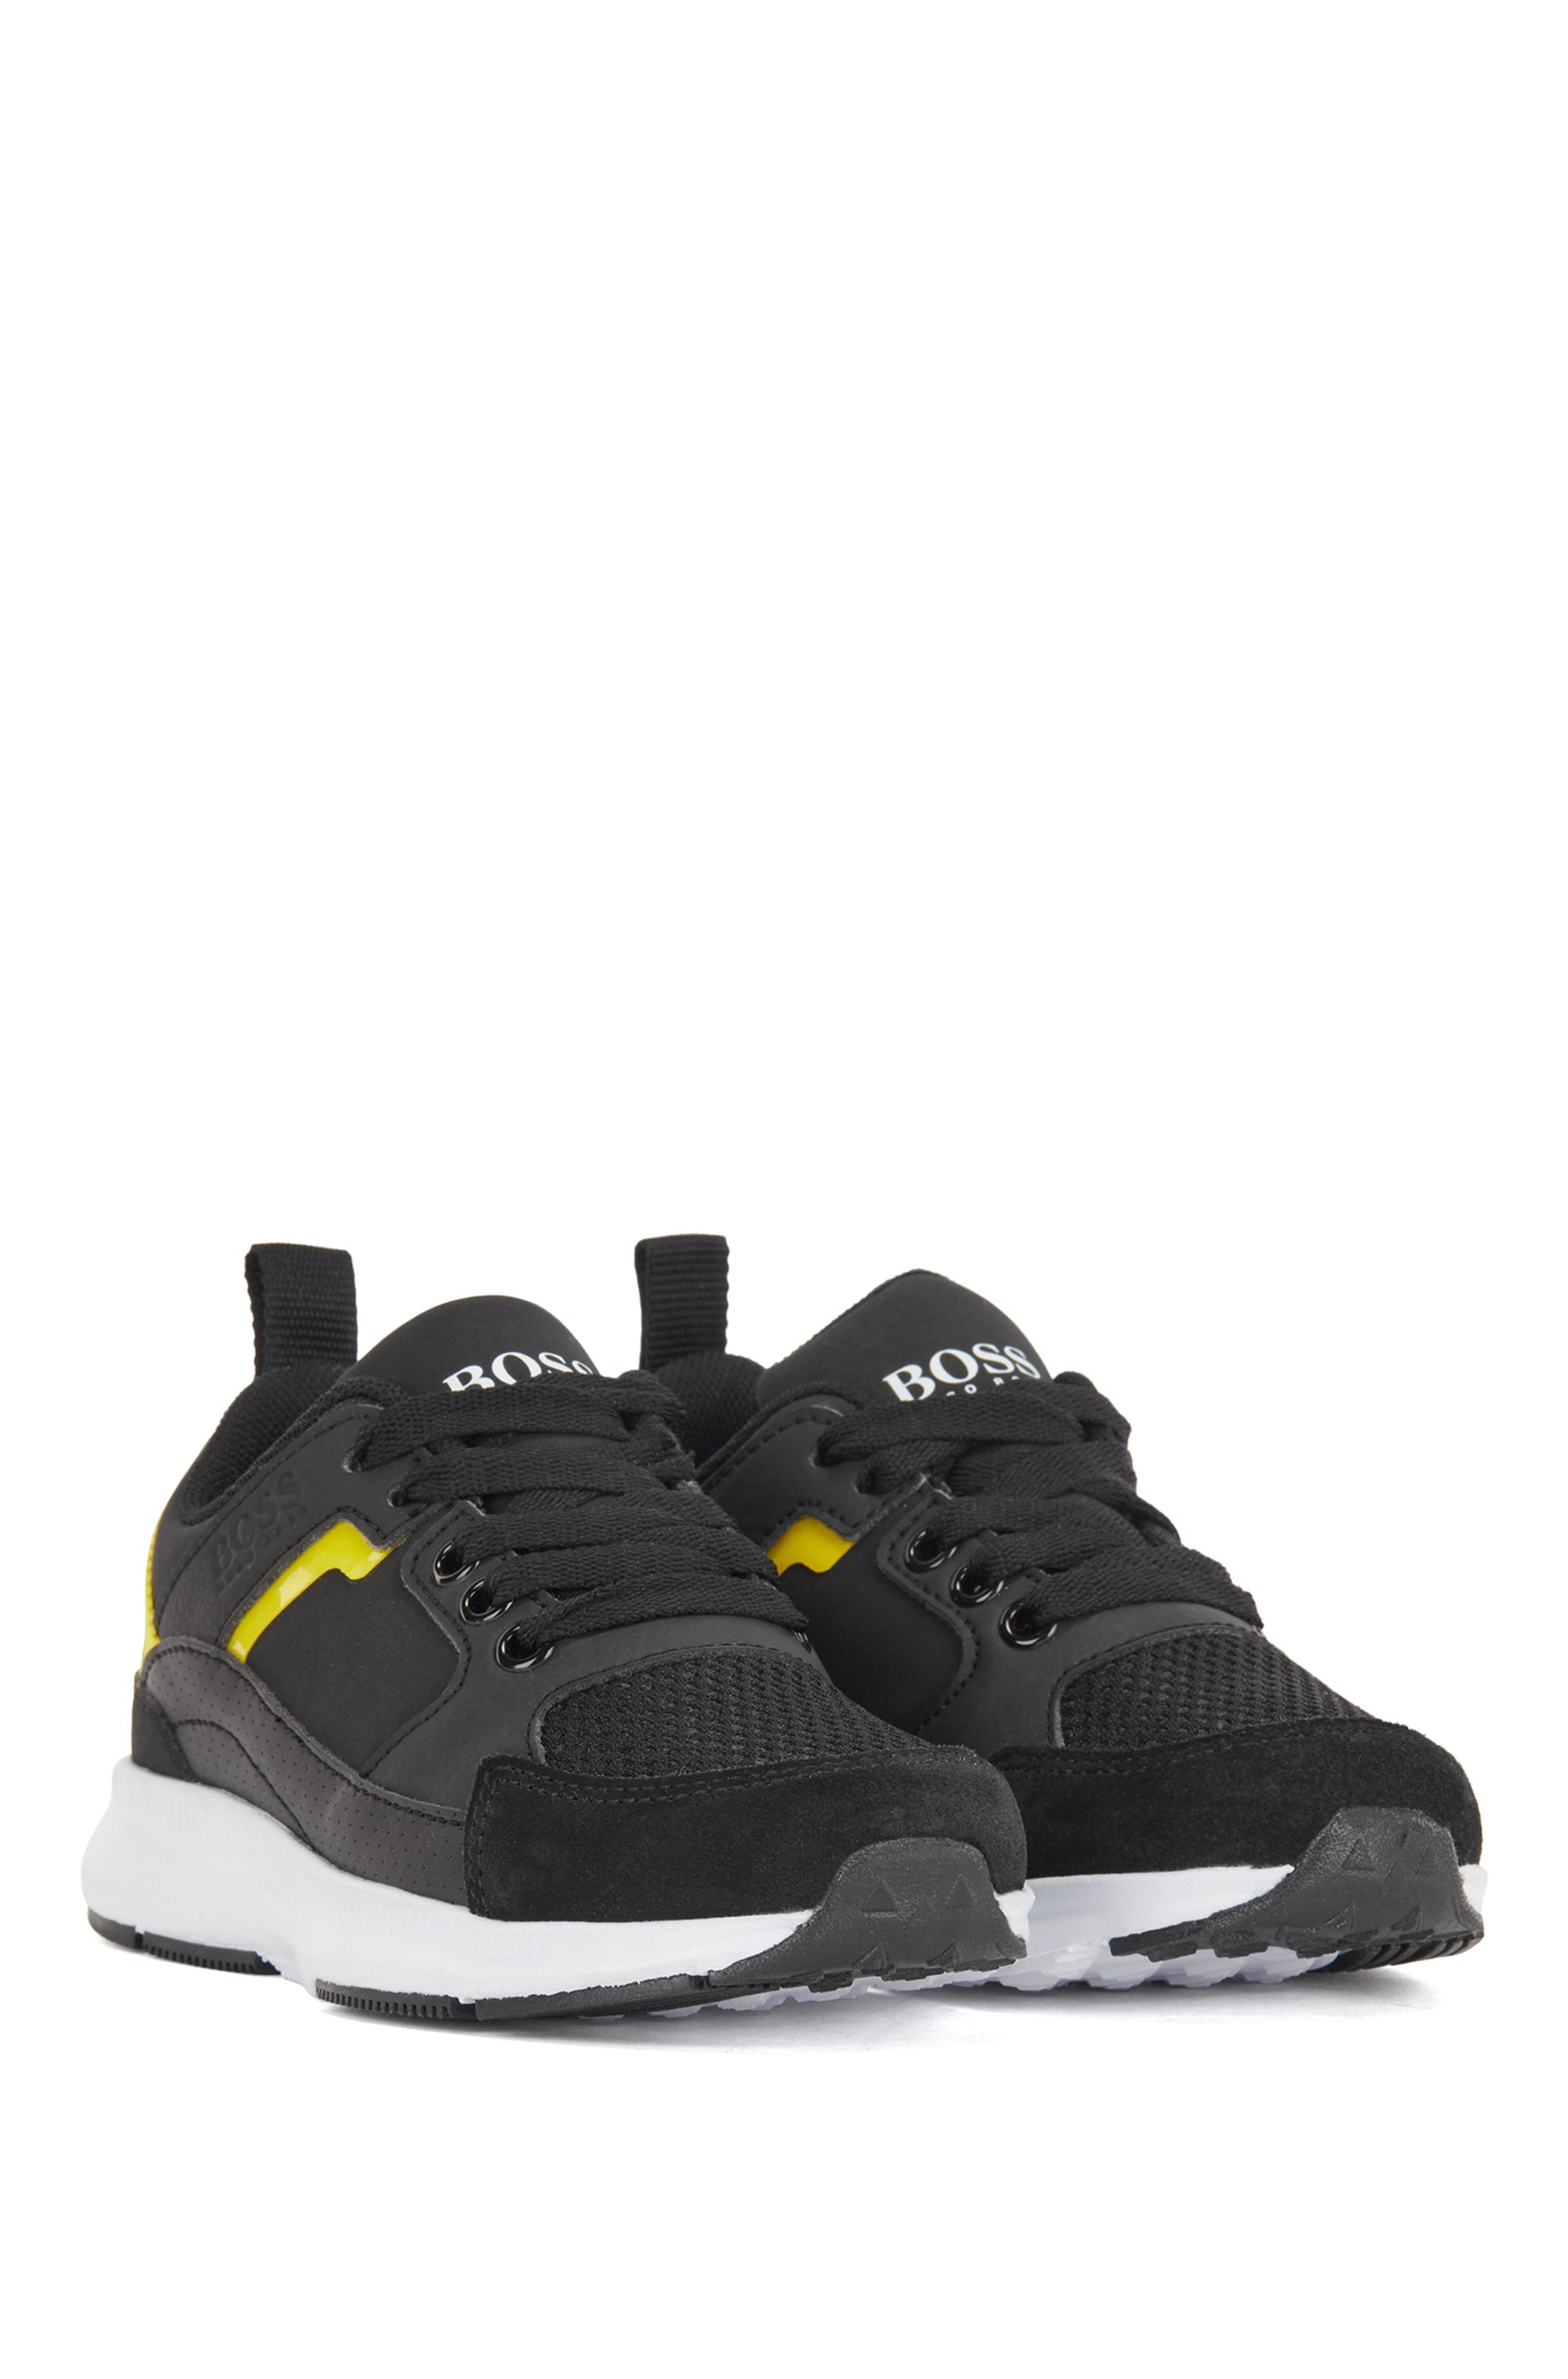 Kids' trainers in mixed materials with logo details, Black